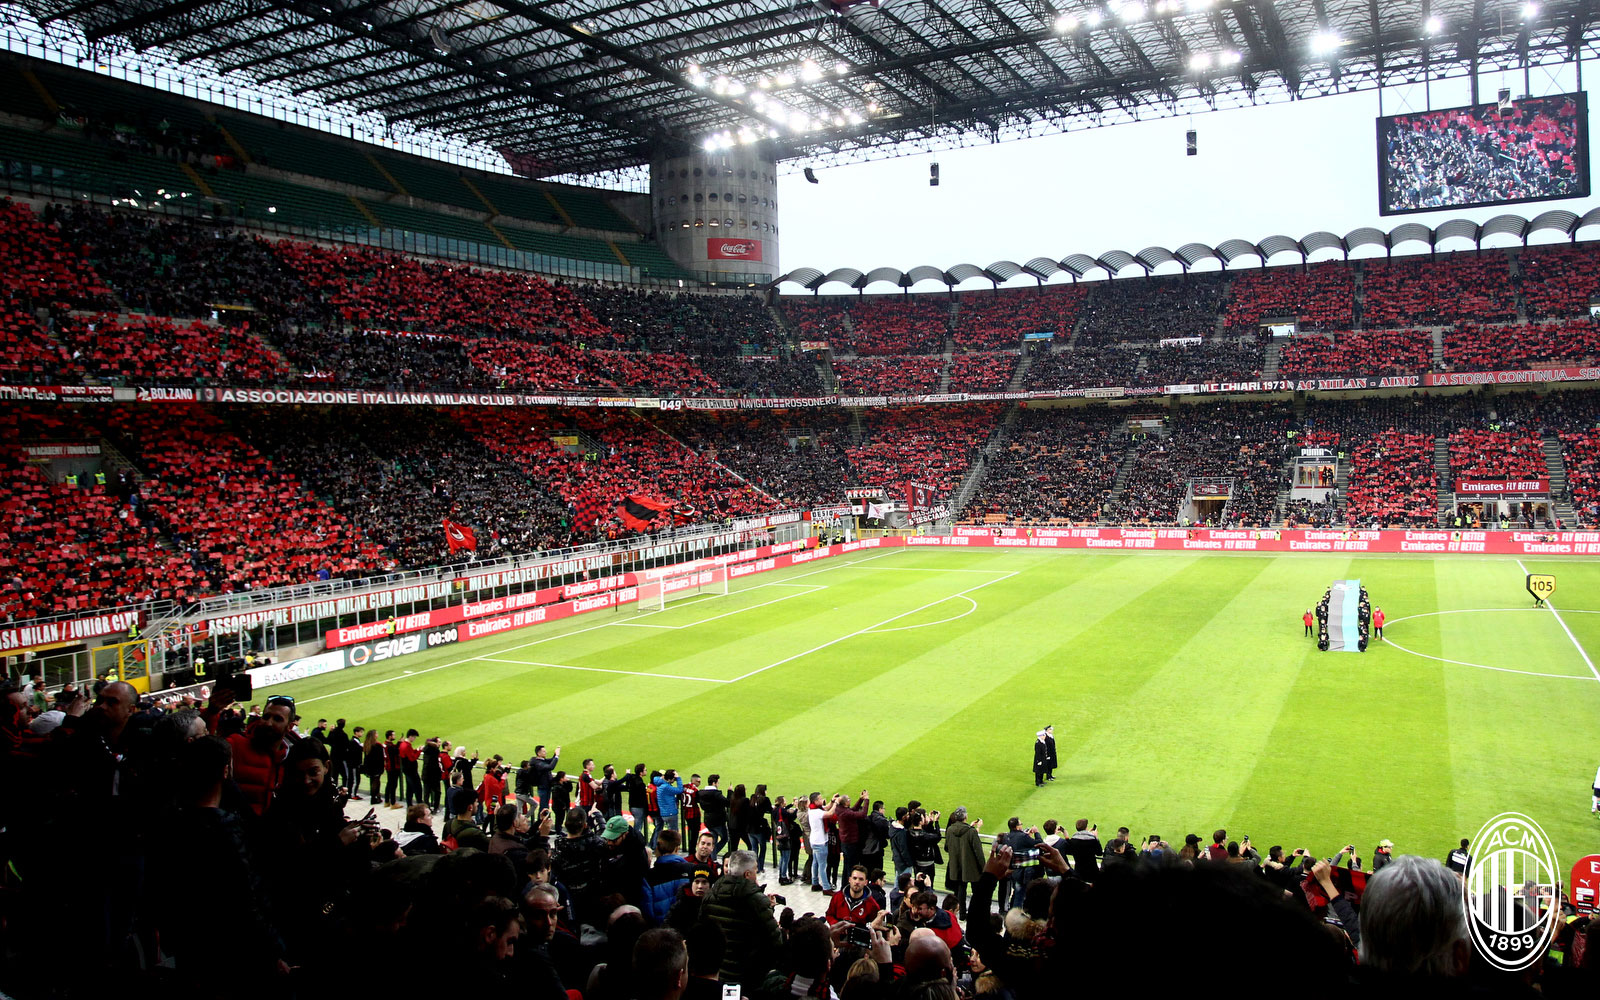 Milan fans during Milan-Sassuolo at Stadio San Siro on March 2, 2019. (@acmilan.com)